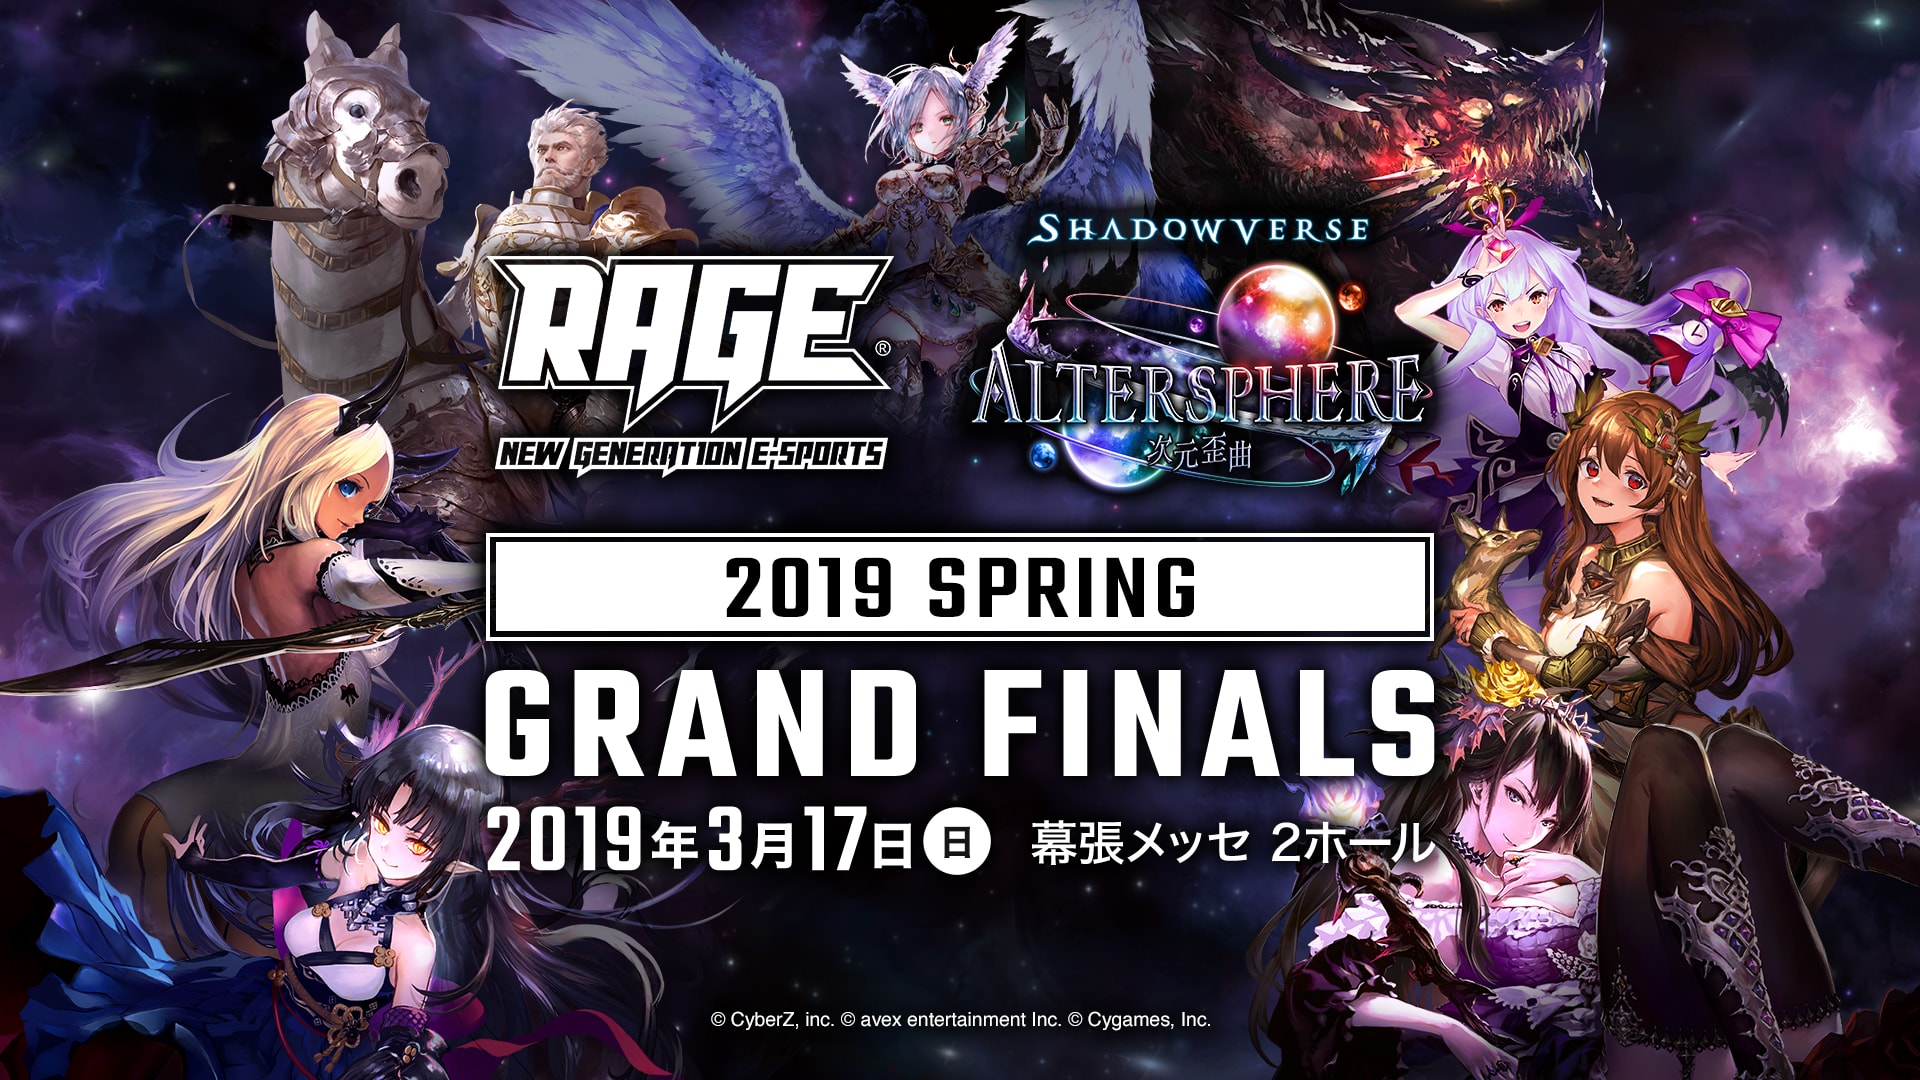 RAGE Shadowverse 2019 Sprig GRAND FINALS